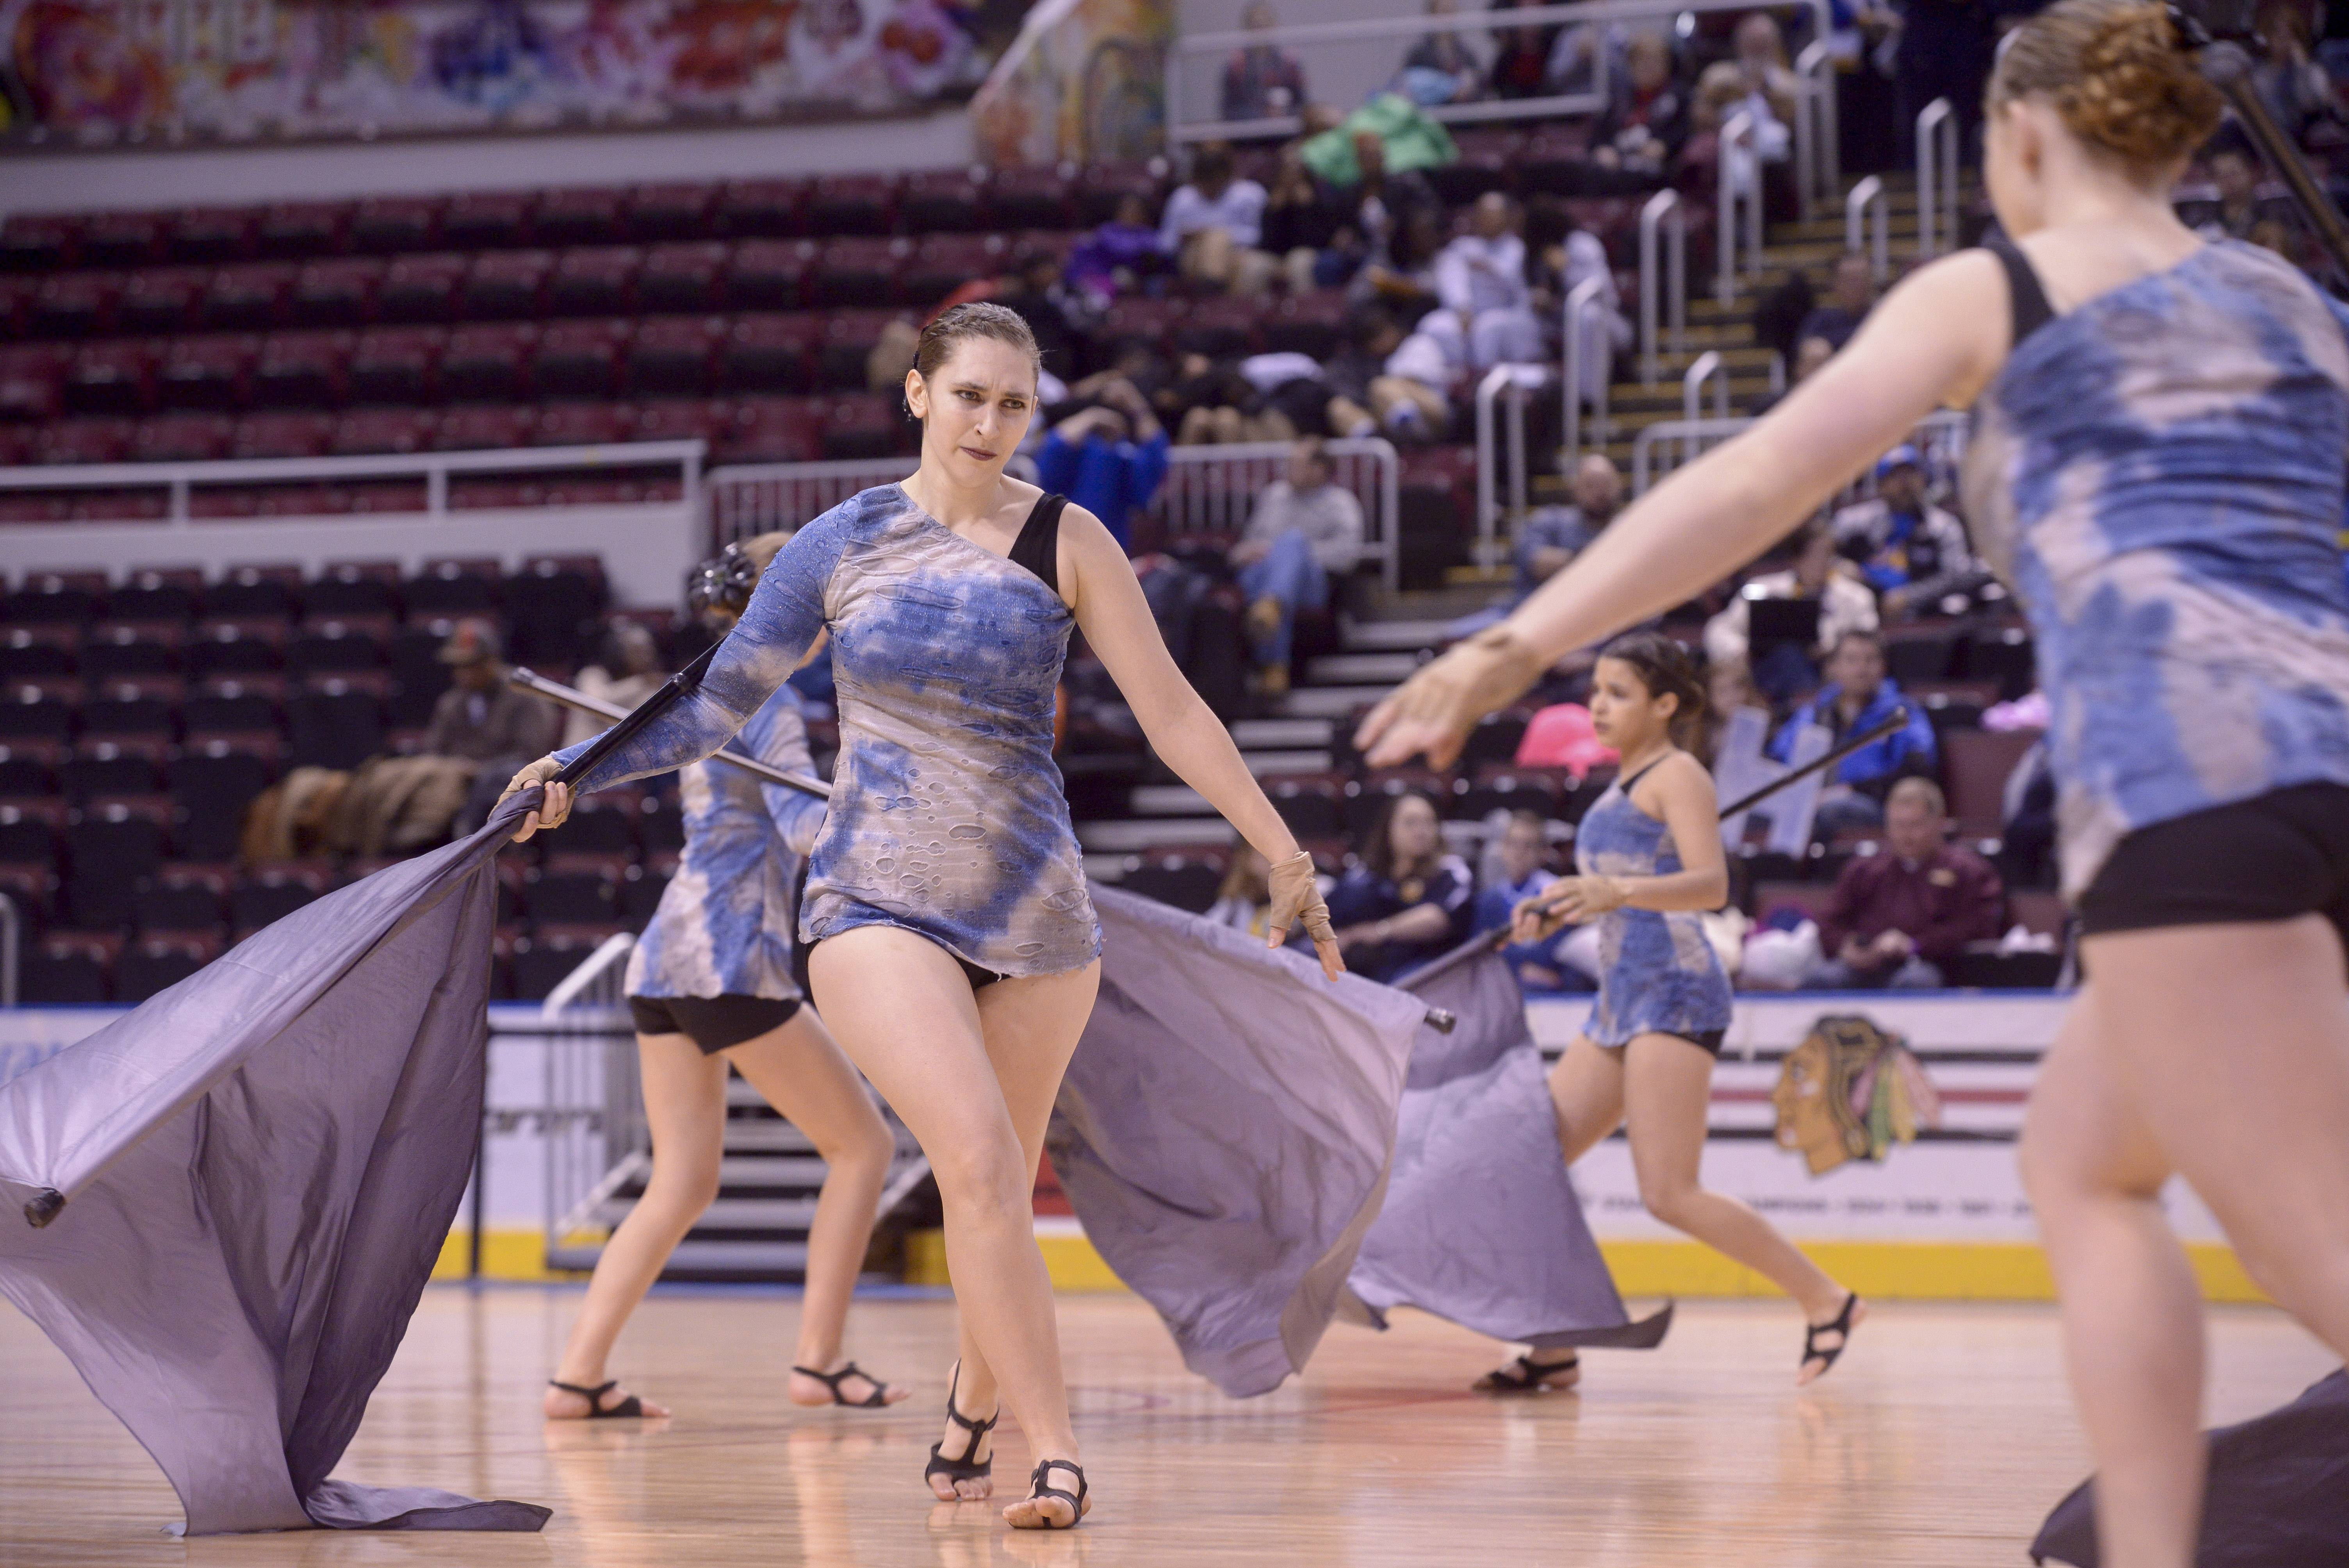 Lakes High School performs in the Varsity Flag Lyrical Flag category during the TEAMDance Illinois 2014 Grand Championship in Peoria, Sunday March 2nd.